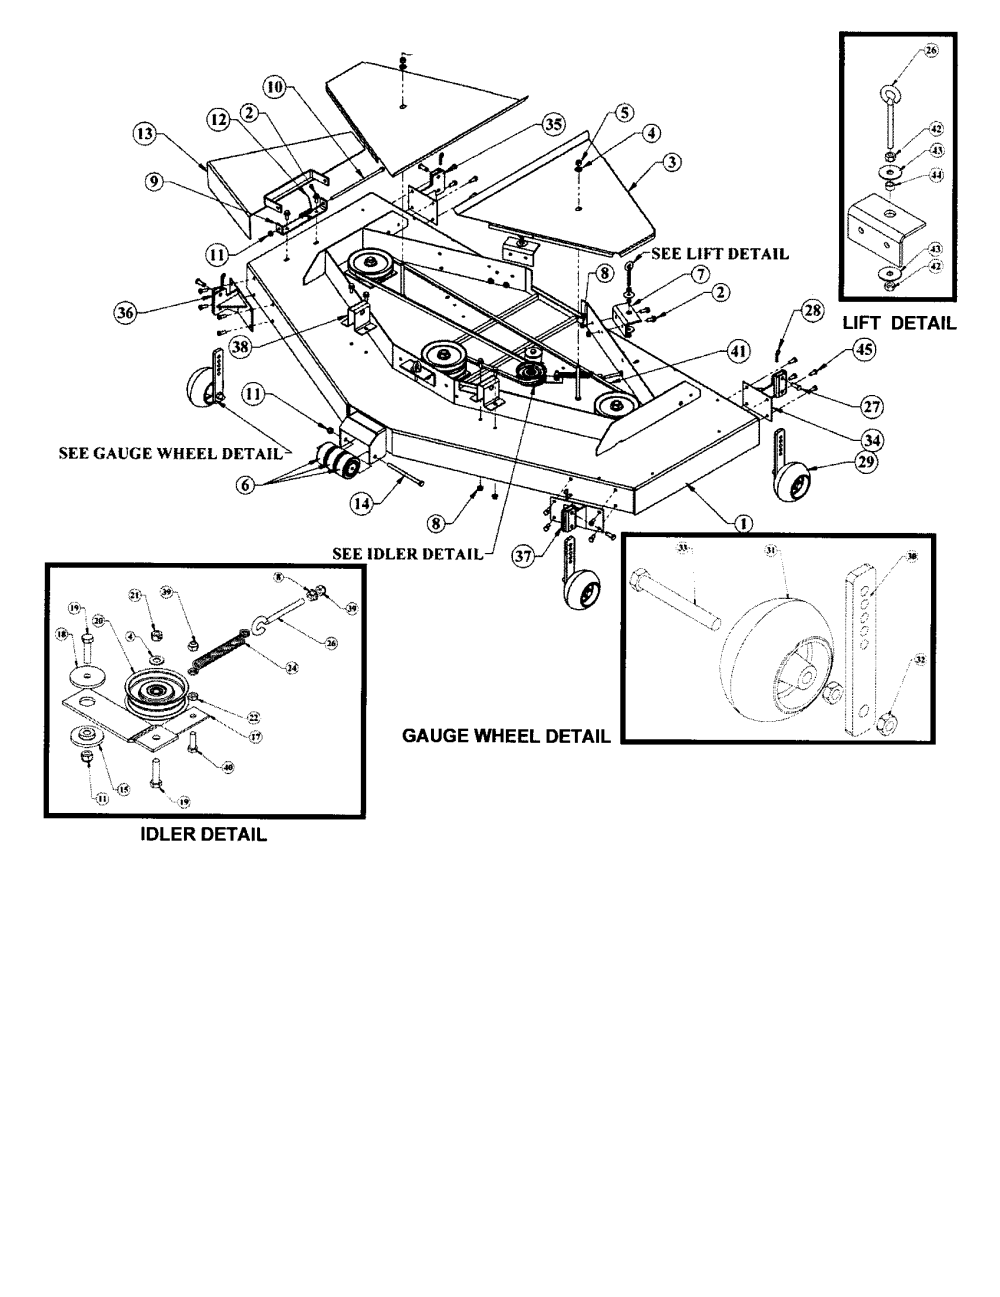 medium resolution of scott s1642 lawn tractor wiring diagram